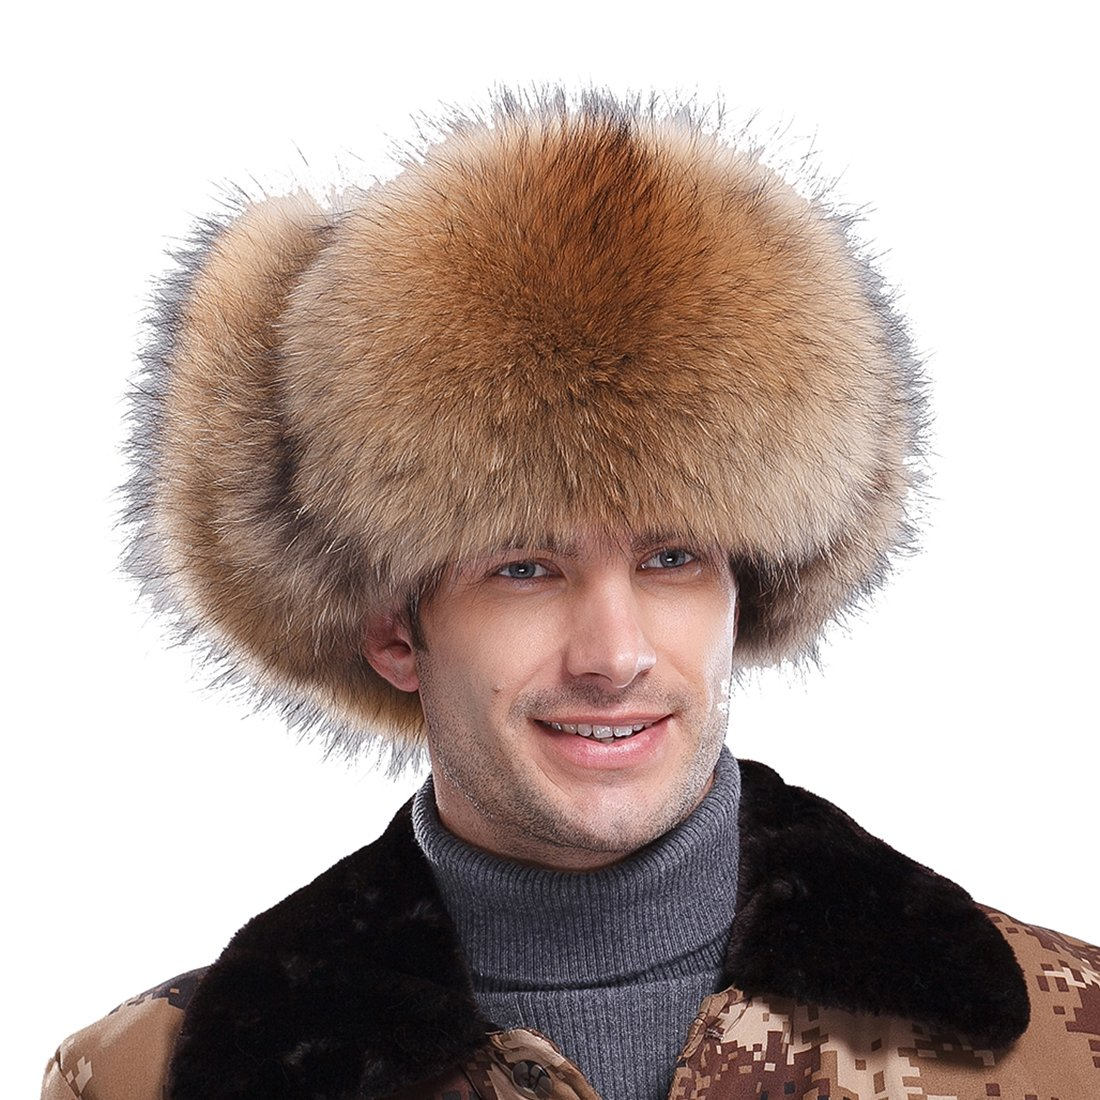 URSFUR Men's Raccoon Fur & Leather Trapper Hats Natural Color by URSFUR